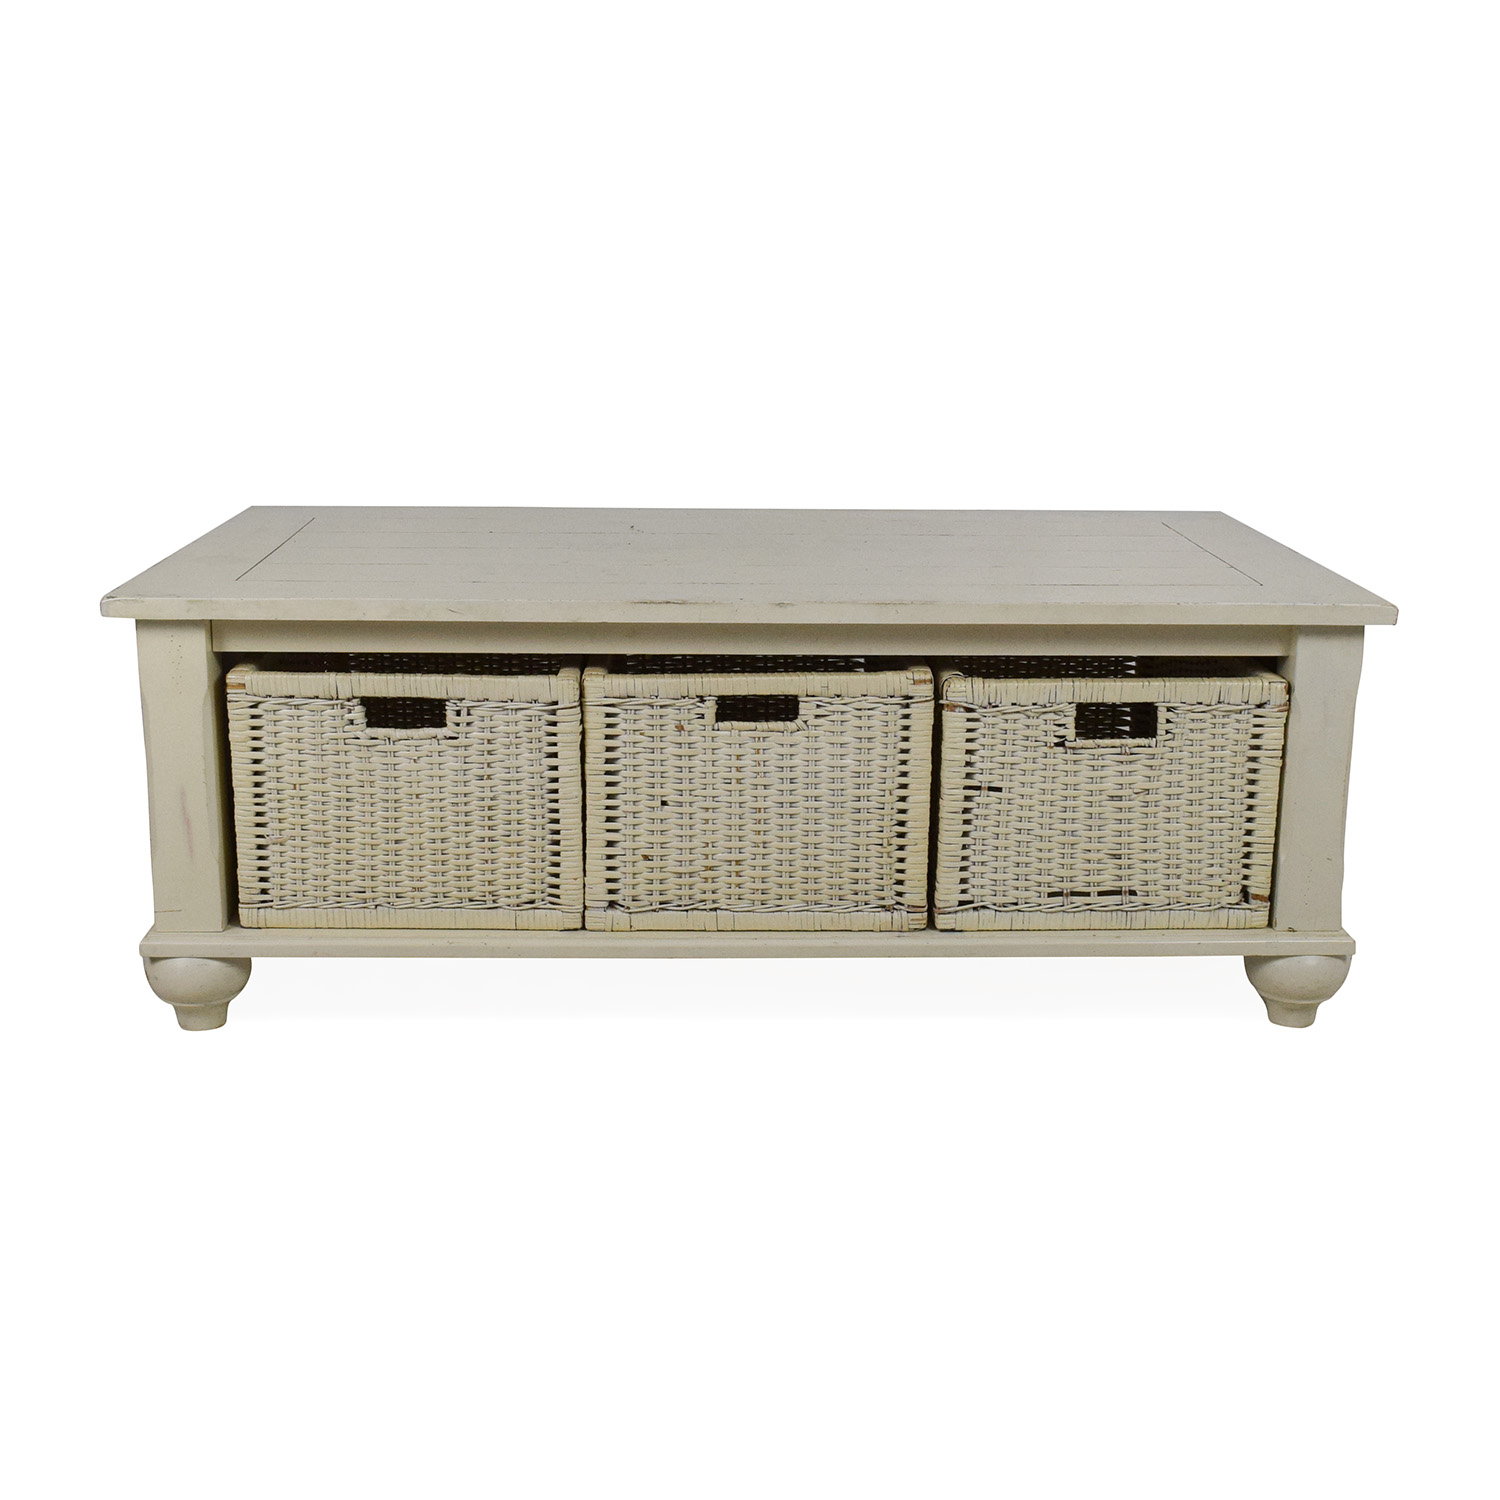 Klaussner Furniture Klaussner Furniture Treasures White Coffee Table Off-White